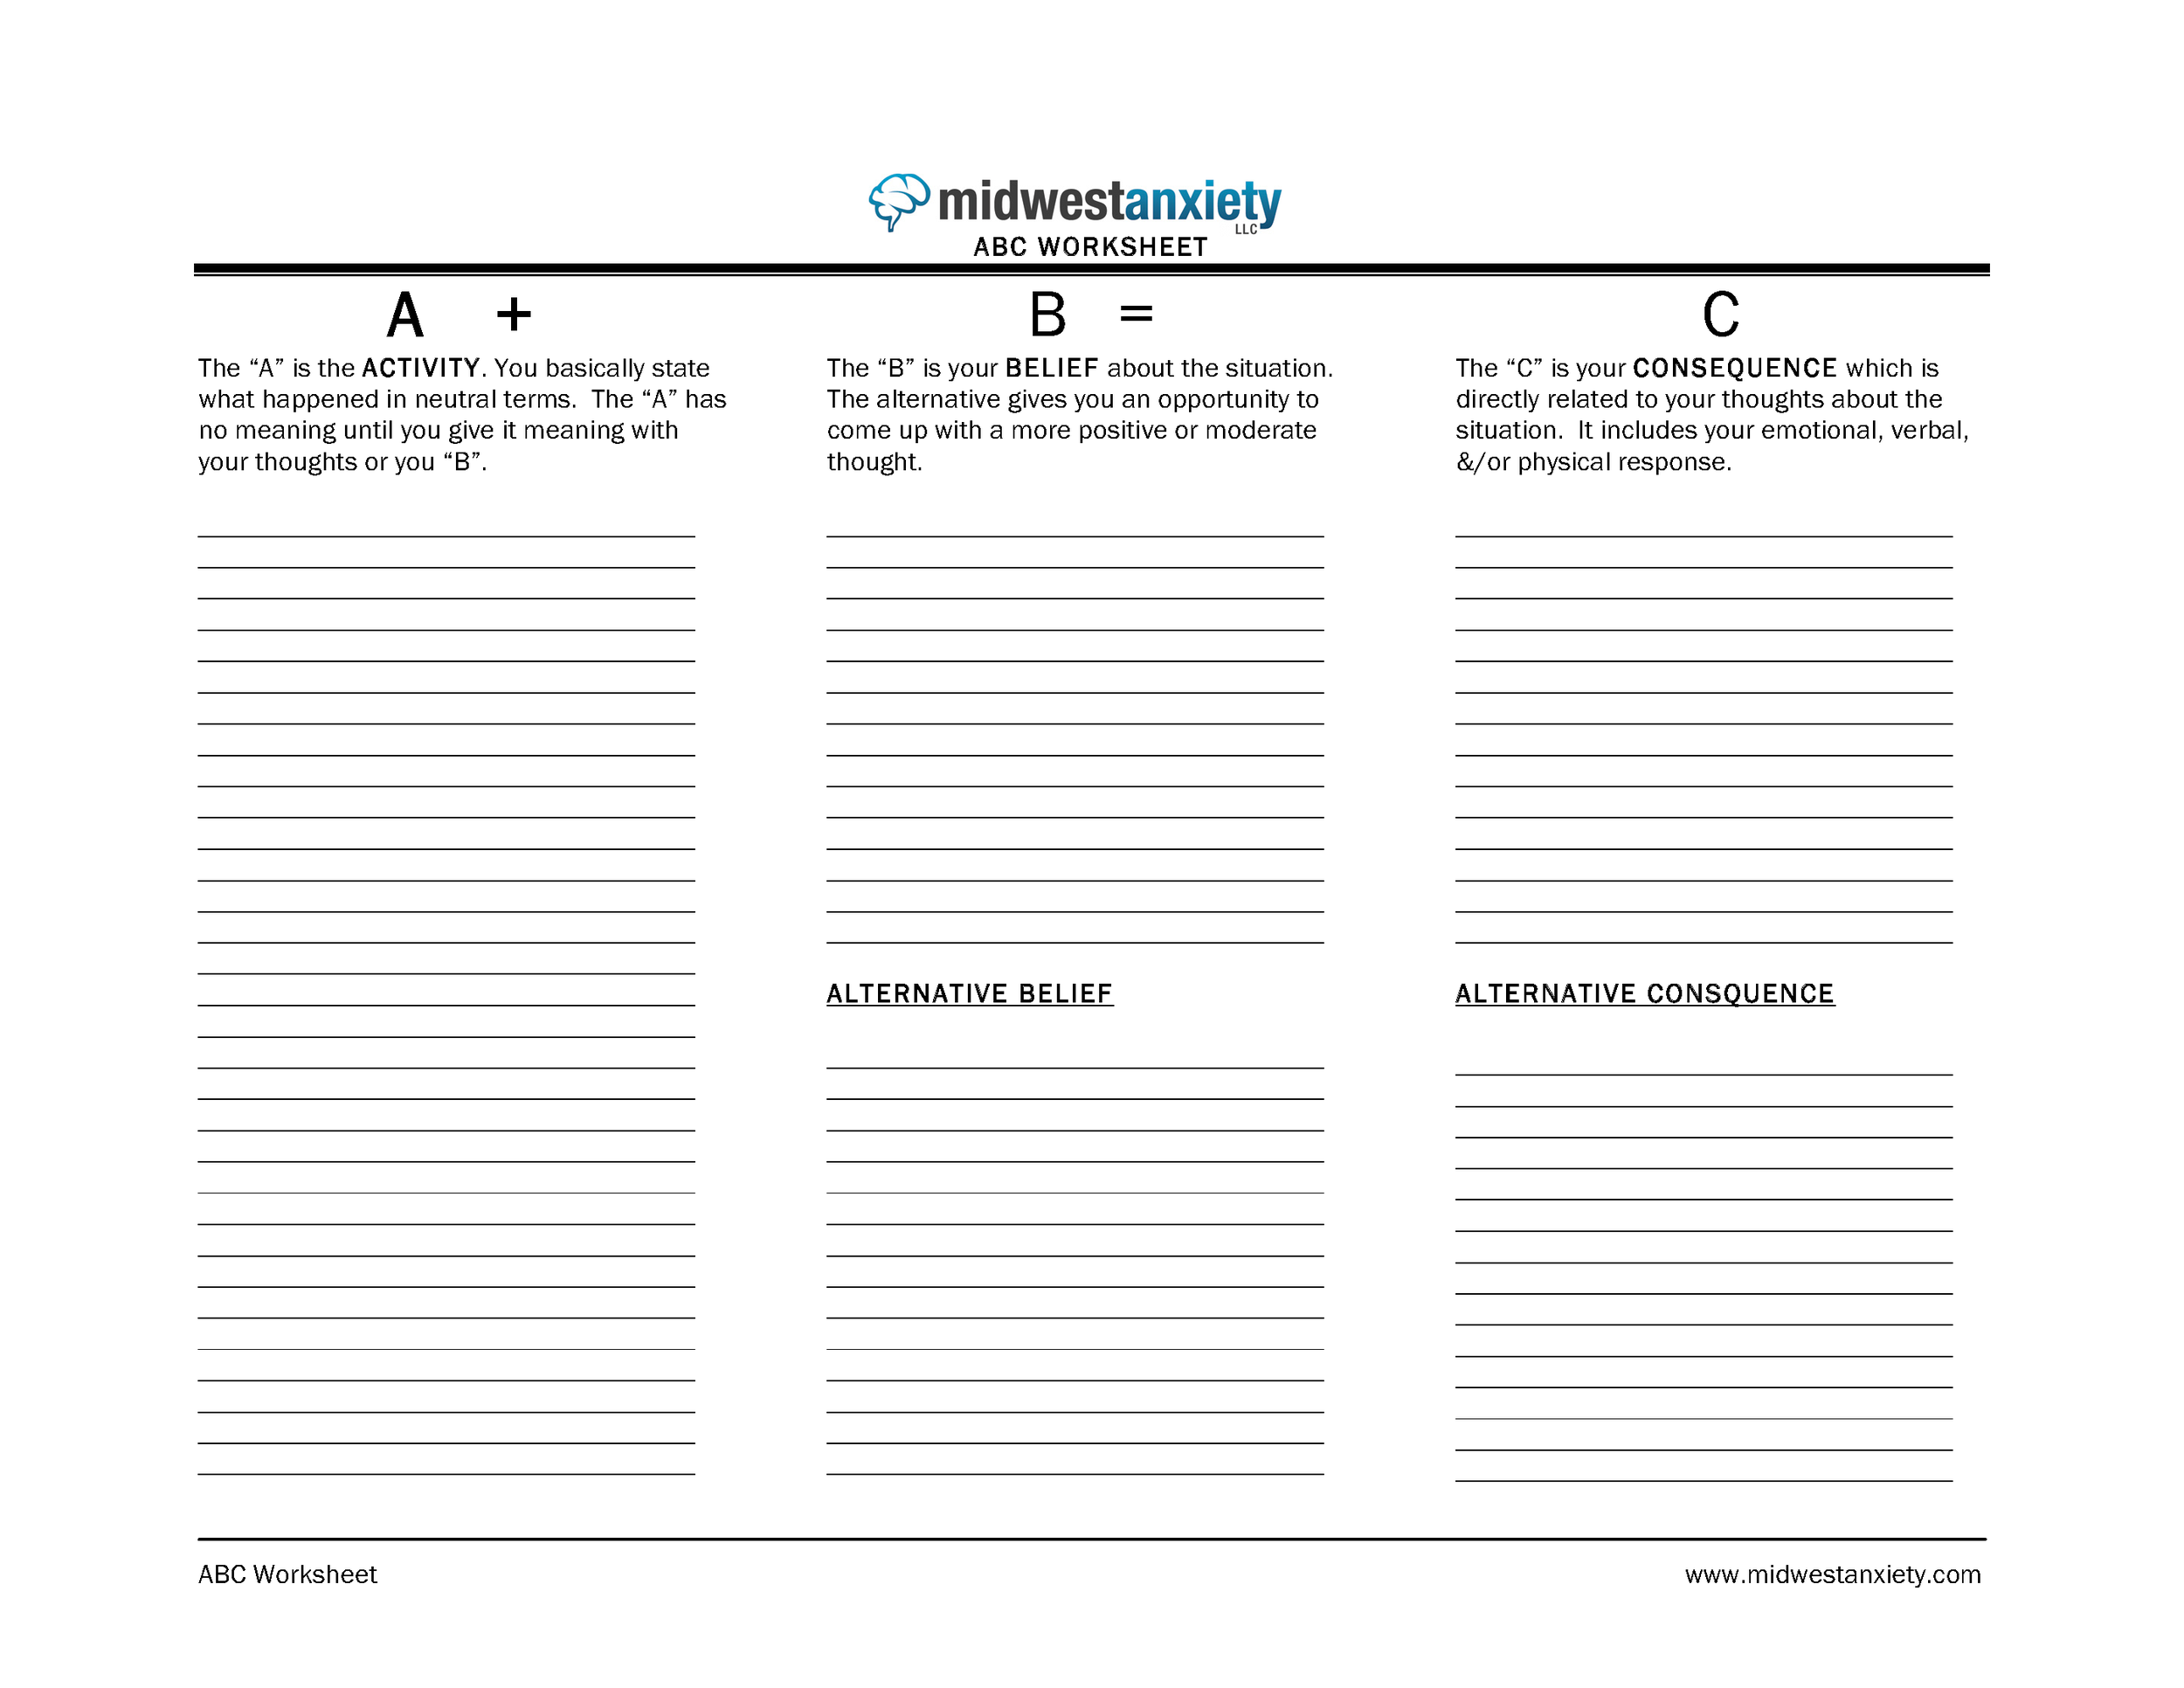 ABC Worksheet.png